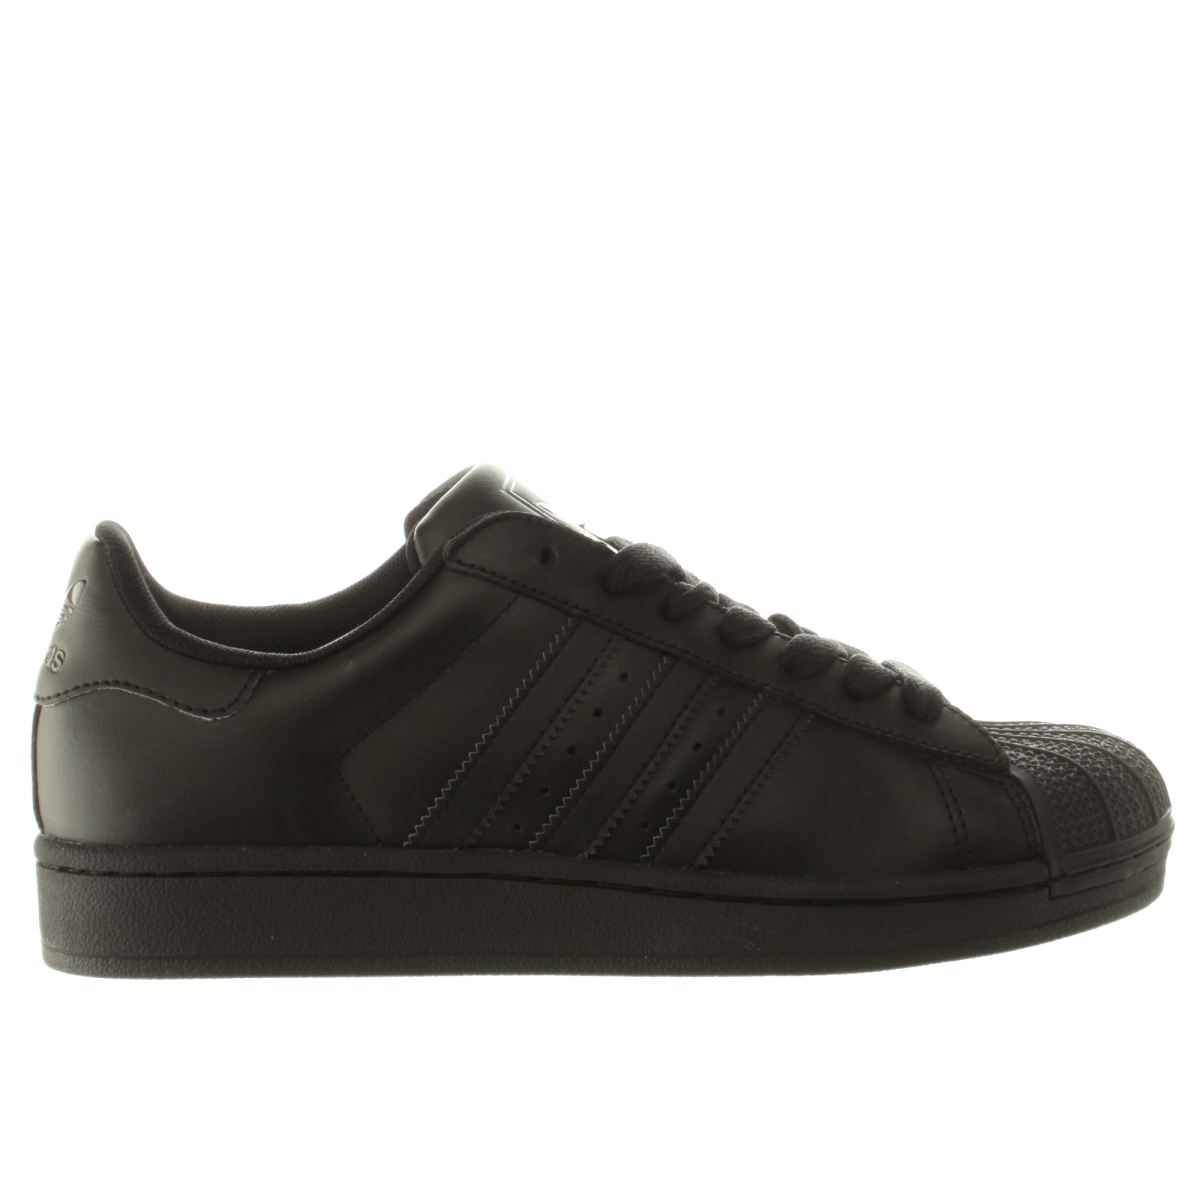 Adidas Shoes Women Rose Gold Wallbank Lfc Co Uk